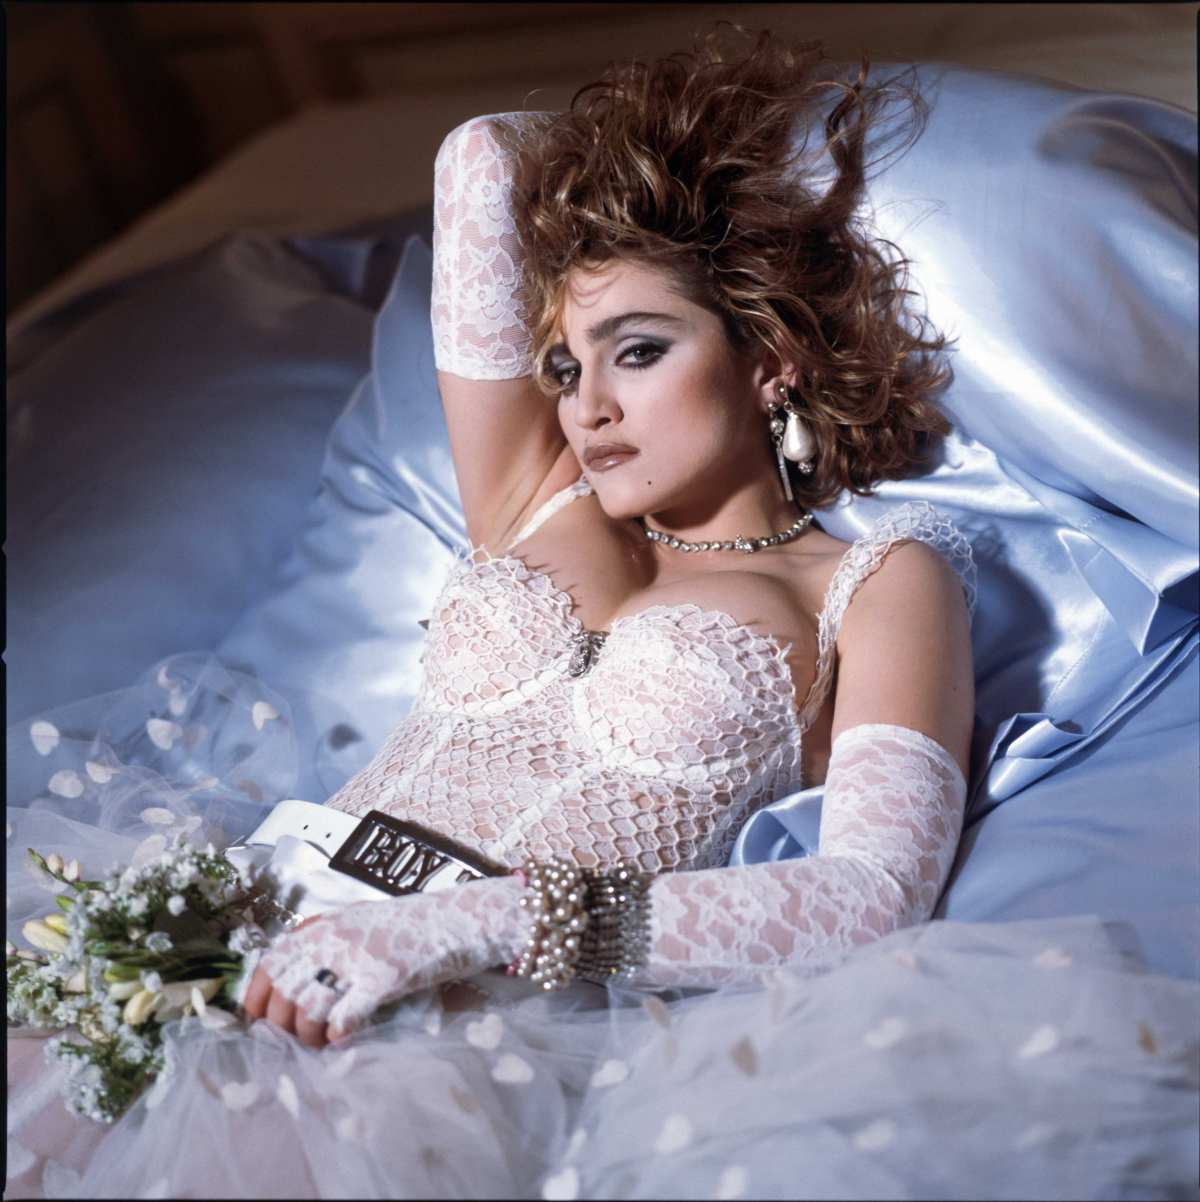 http://squaremadonna.files.wordpress.com/2013/10/madonna_like_a_virgin_album_cover_session_by_meisel_1984_01.jpg?w=1200